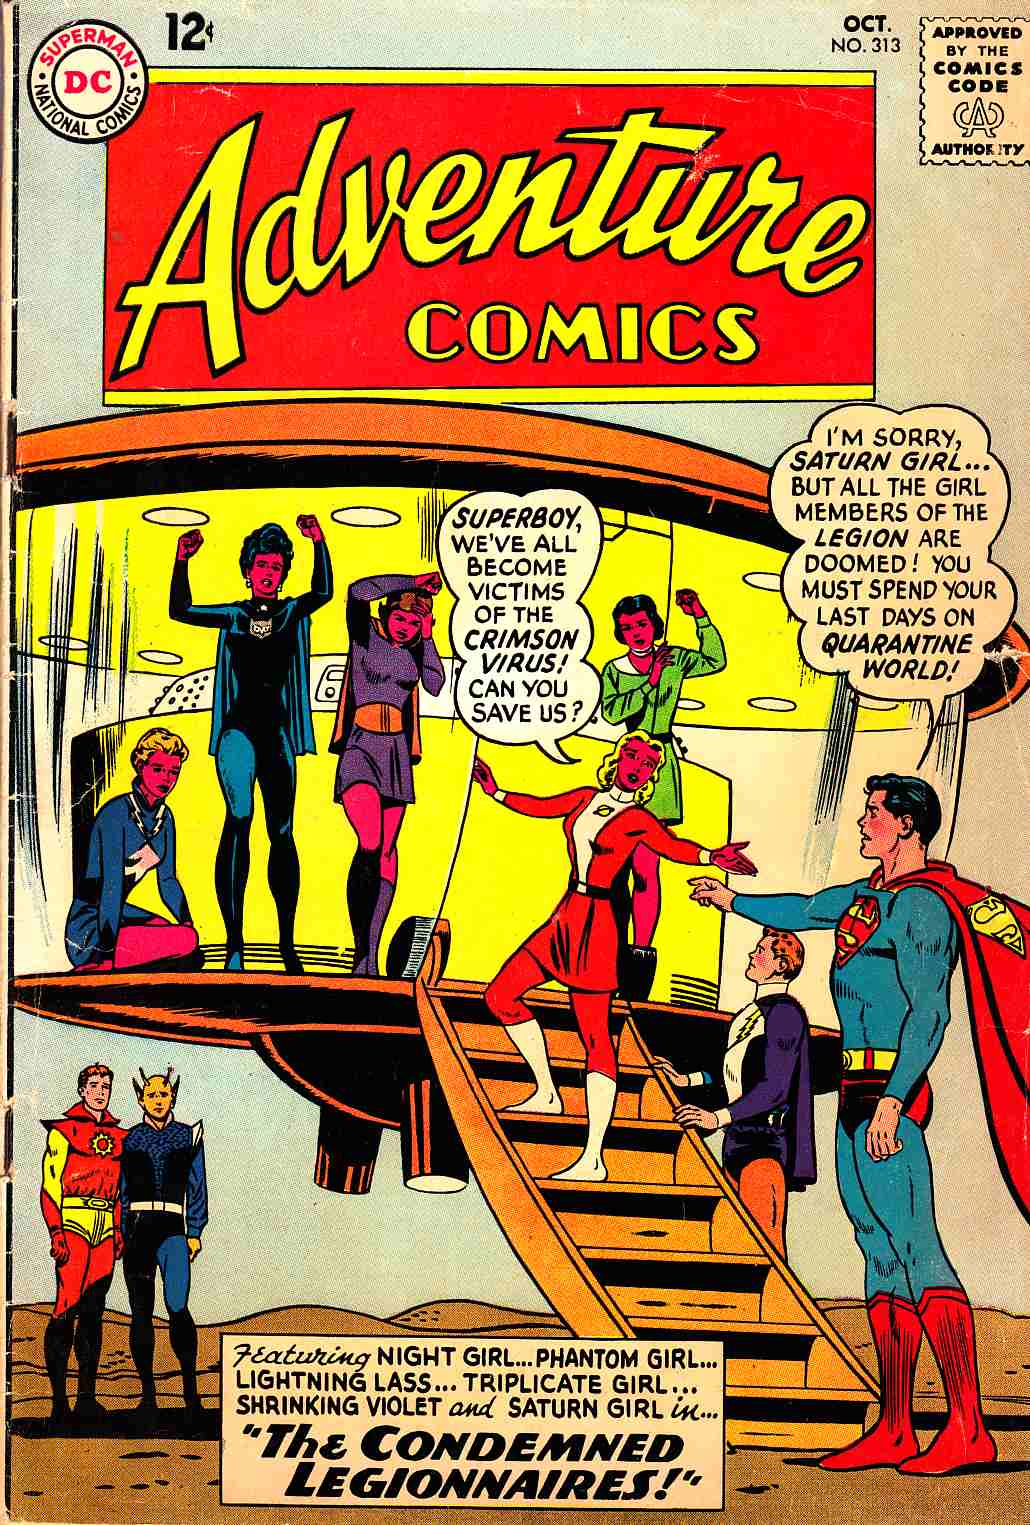 Adventure Comics #313 Very Good (4.0) [DC Comic]